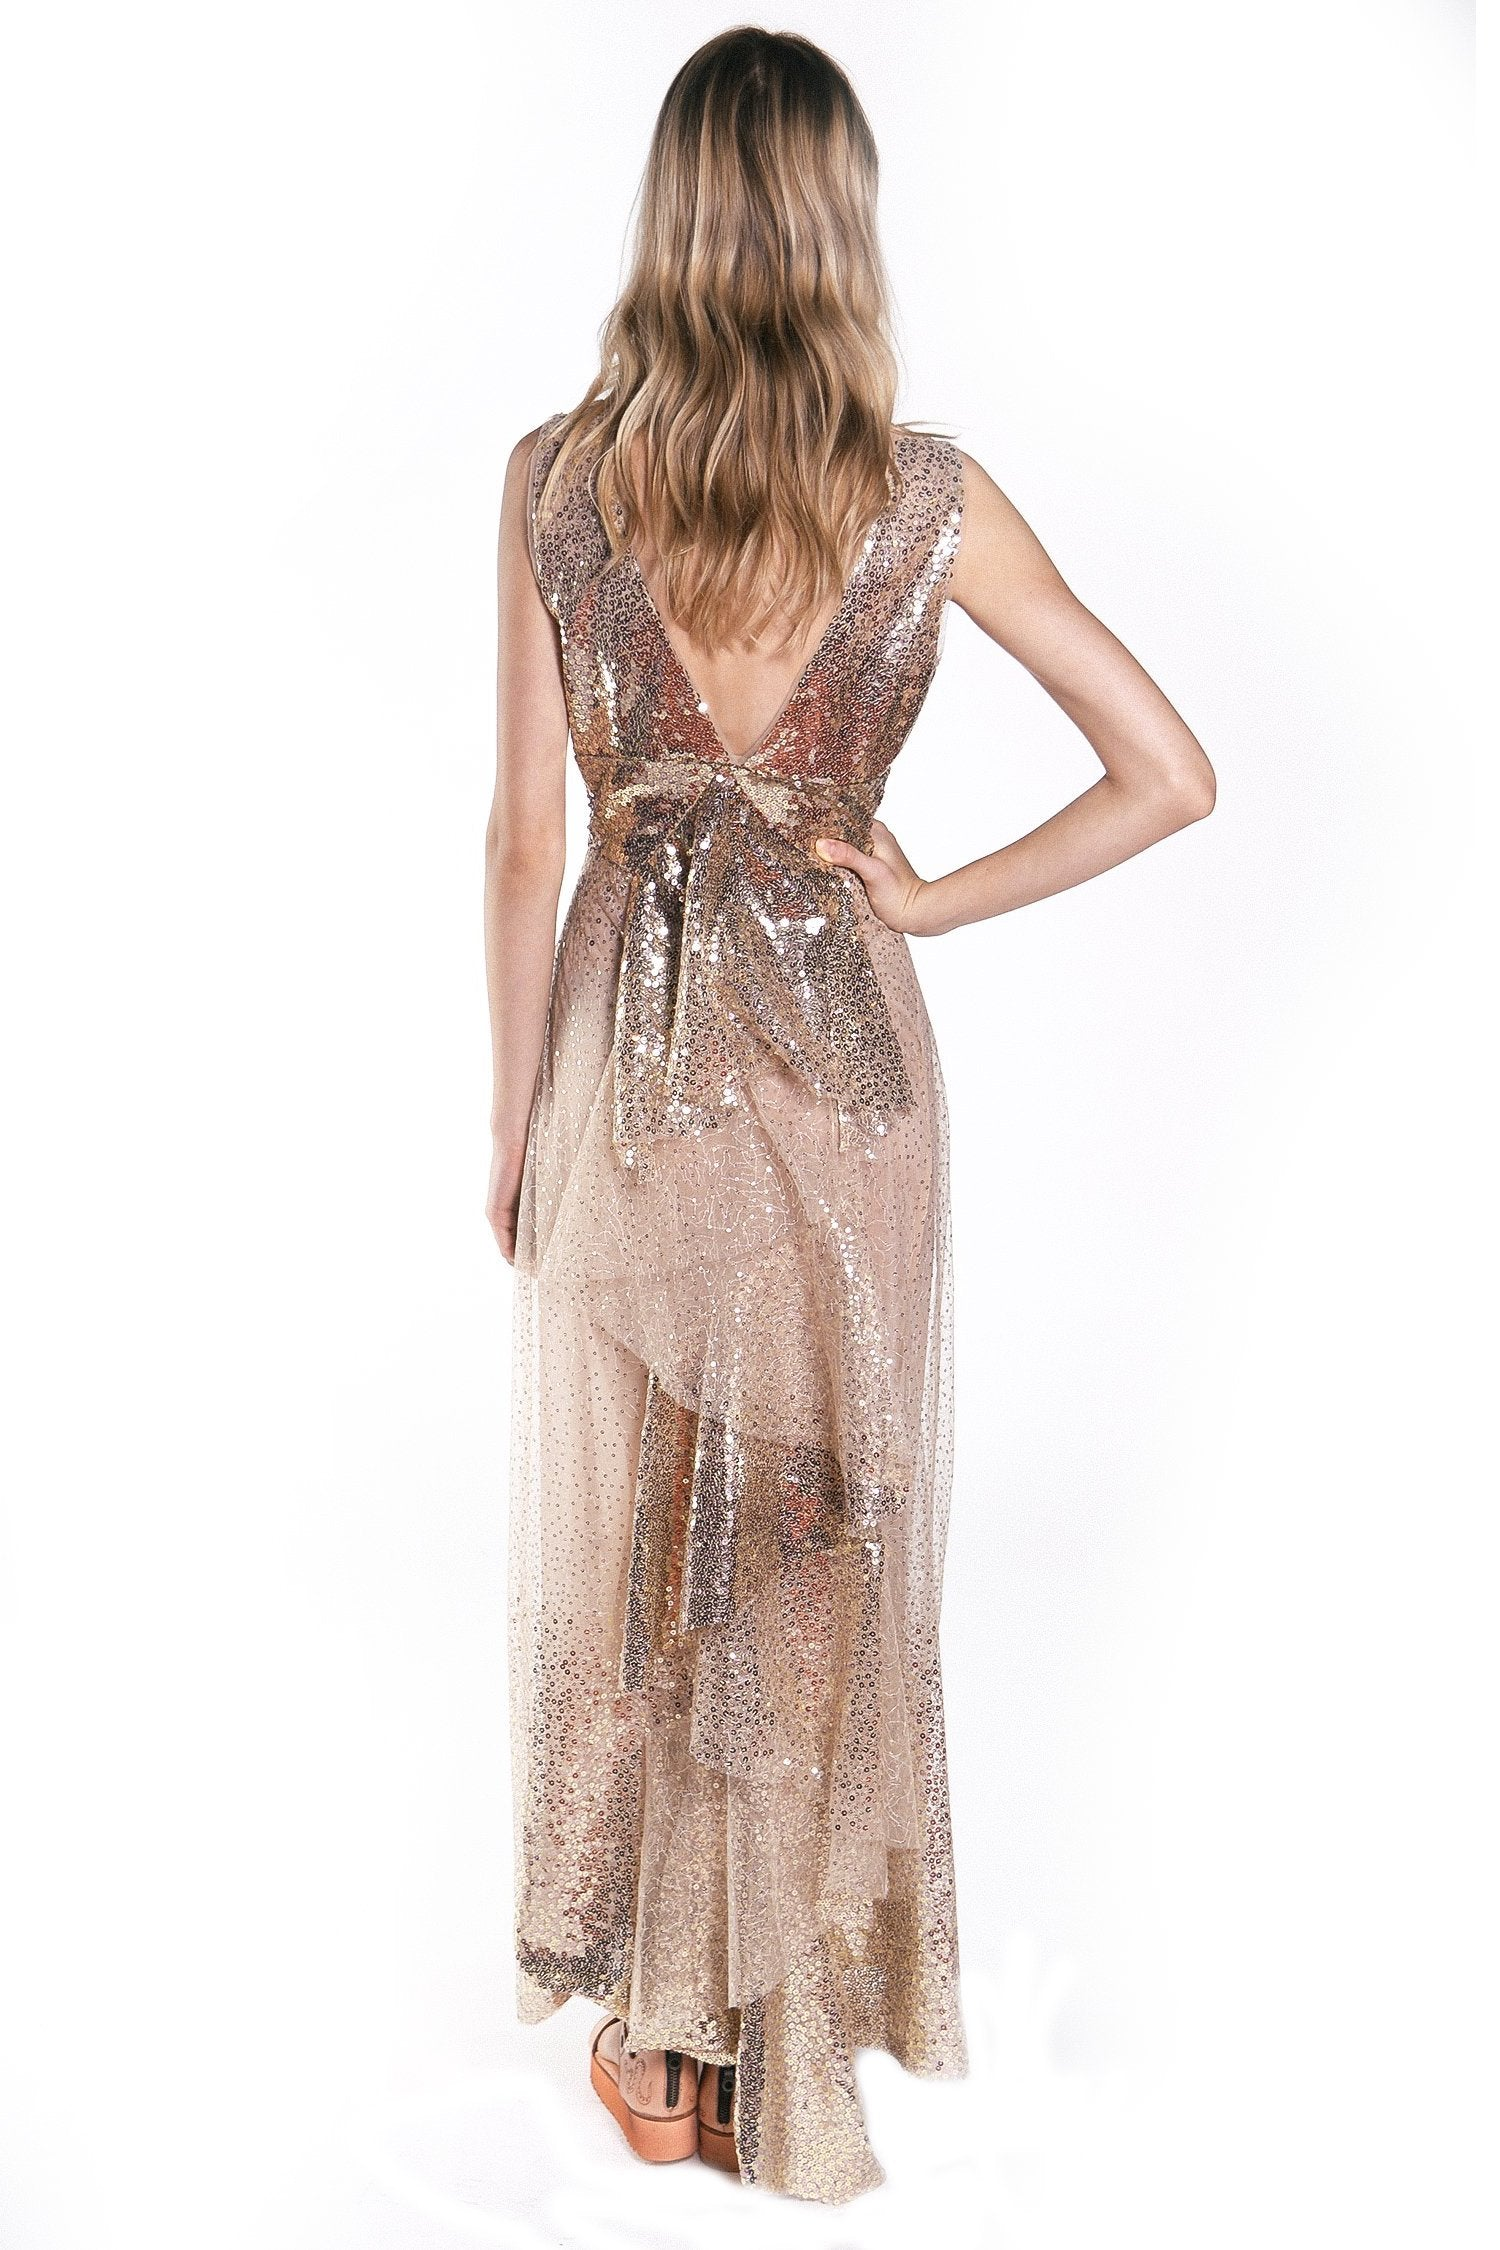 Jewel of the Sea Sparkle Maxi Dress - Anna Sui